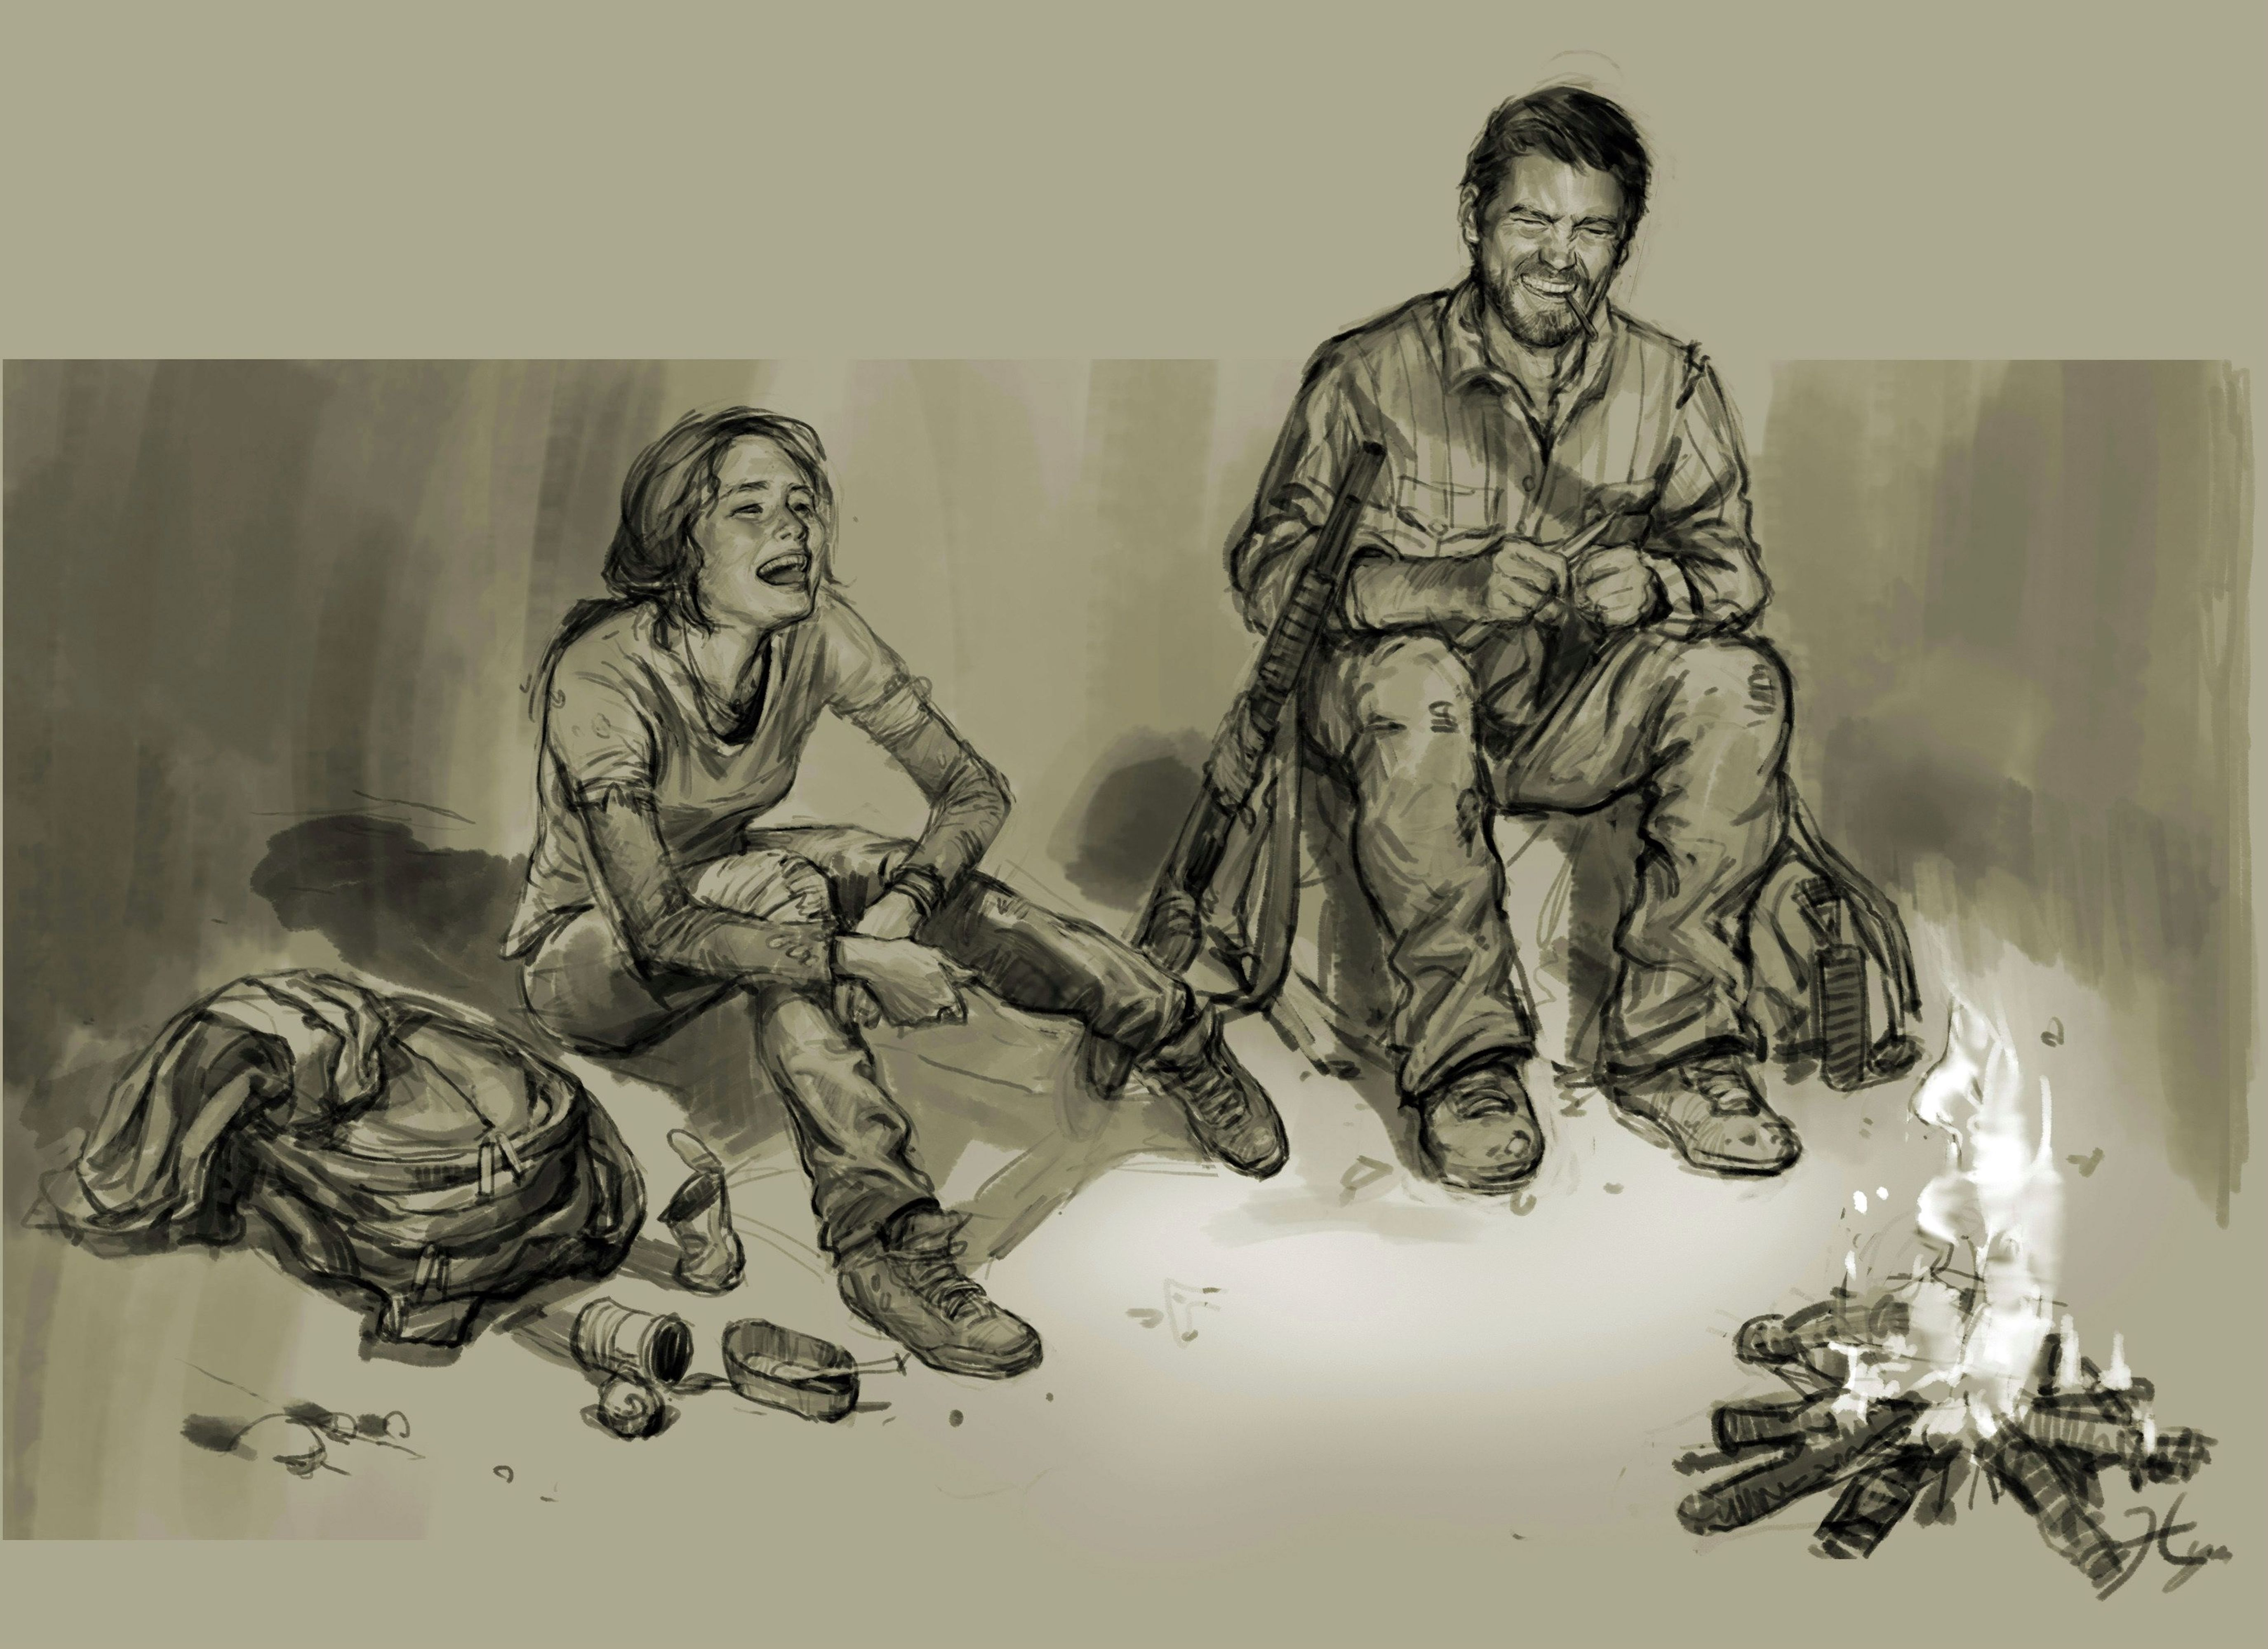 File:Drawing of ellie and joel near fire laughing.jpg